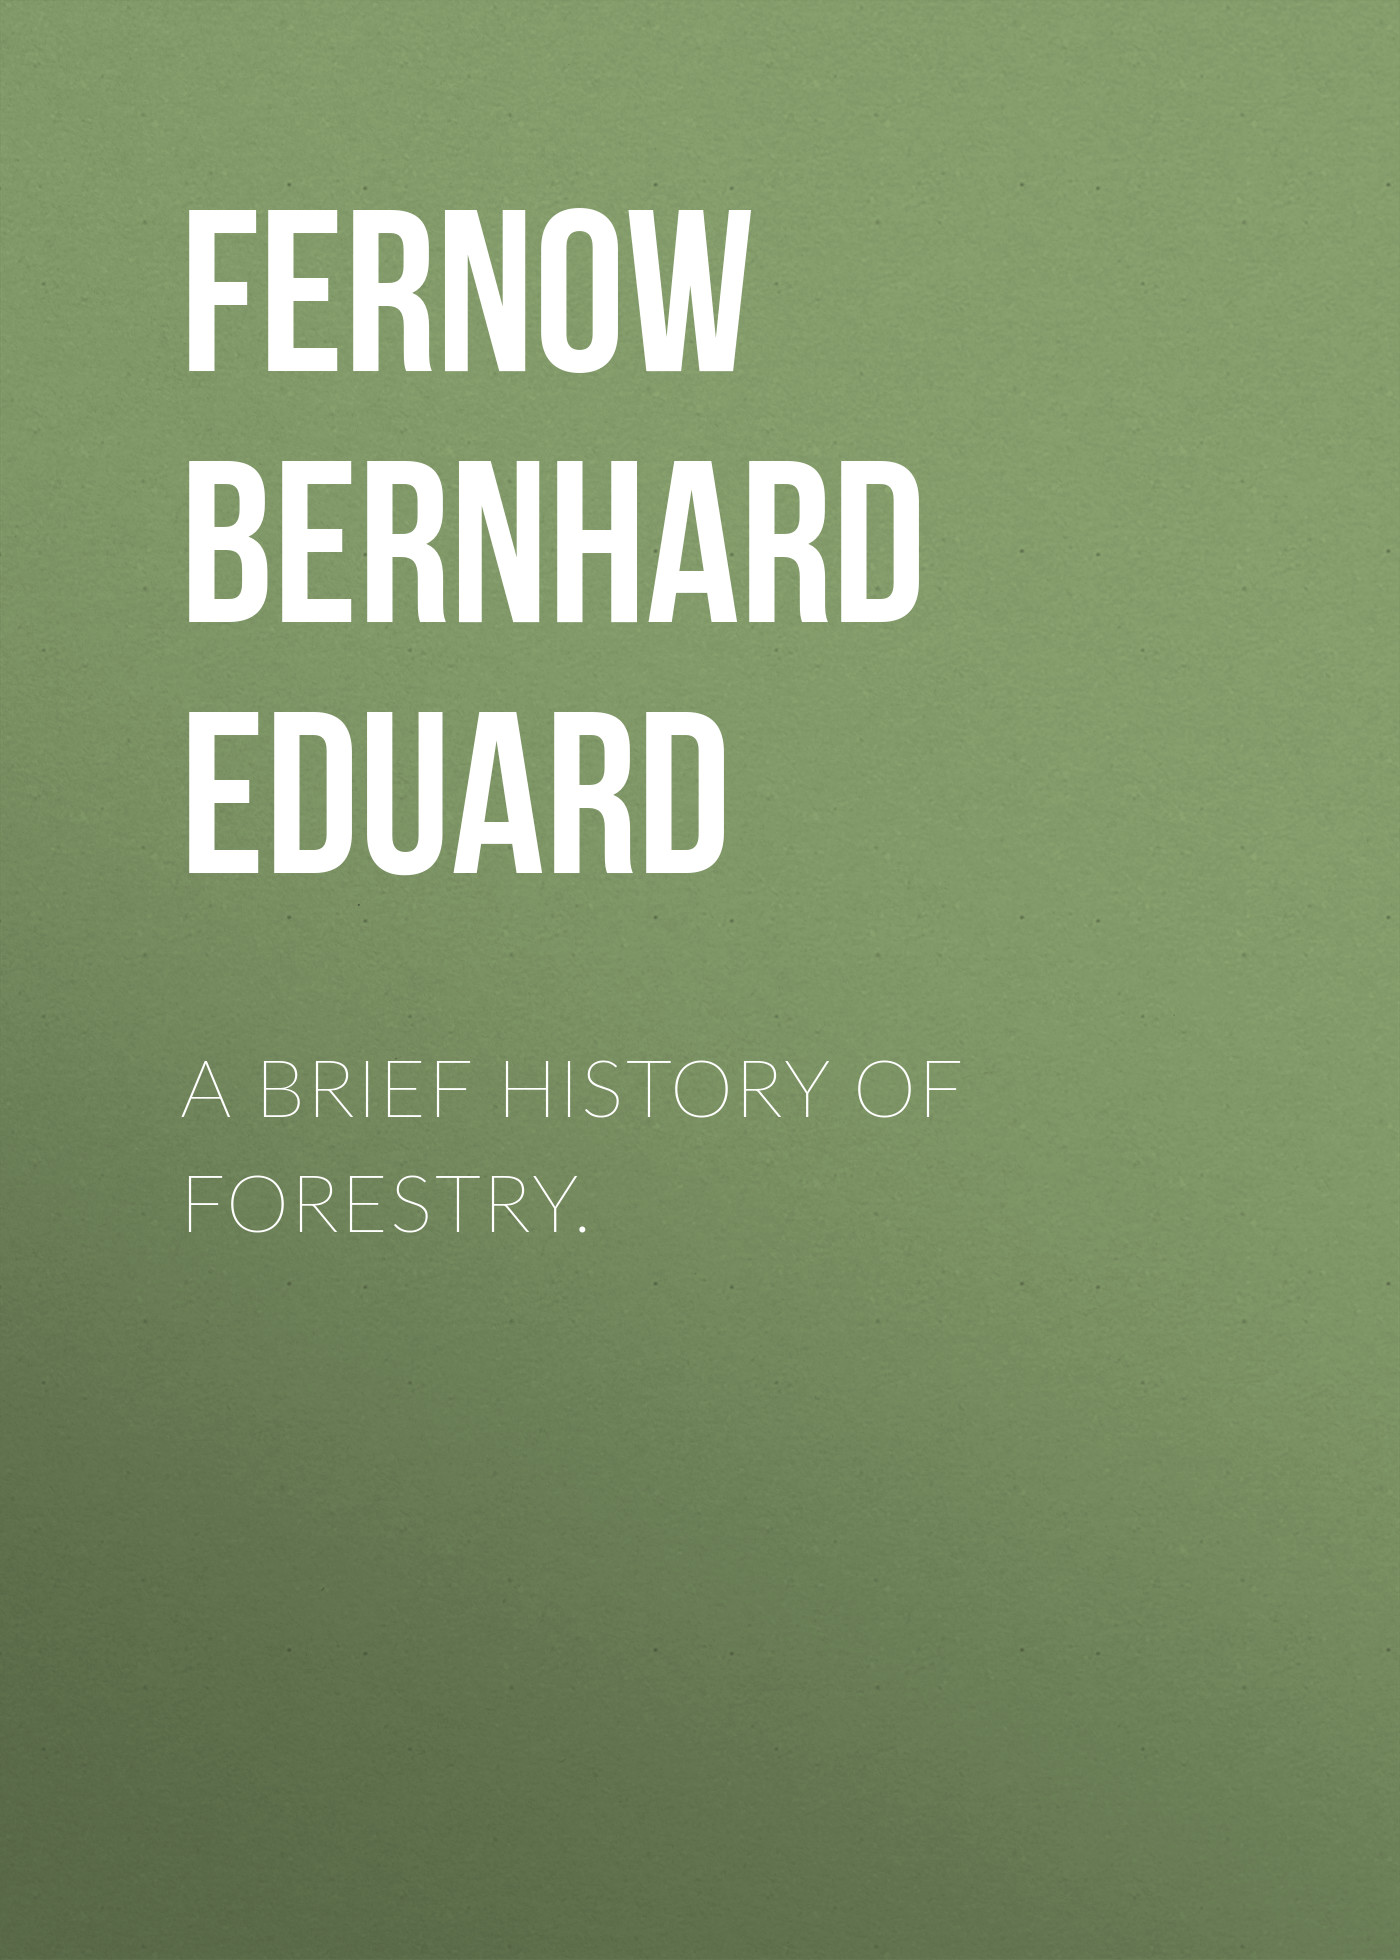 A Brief History of Forestry.